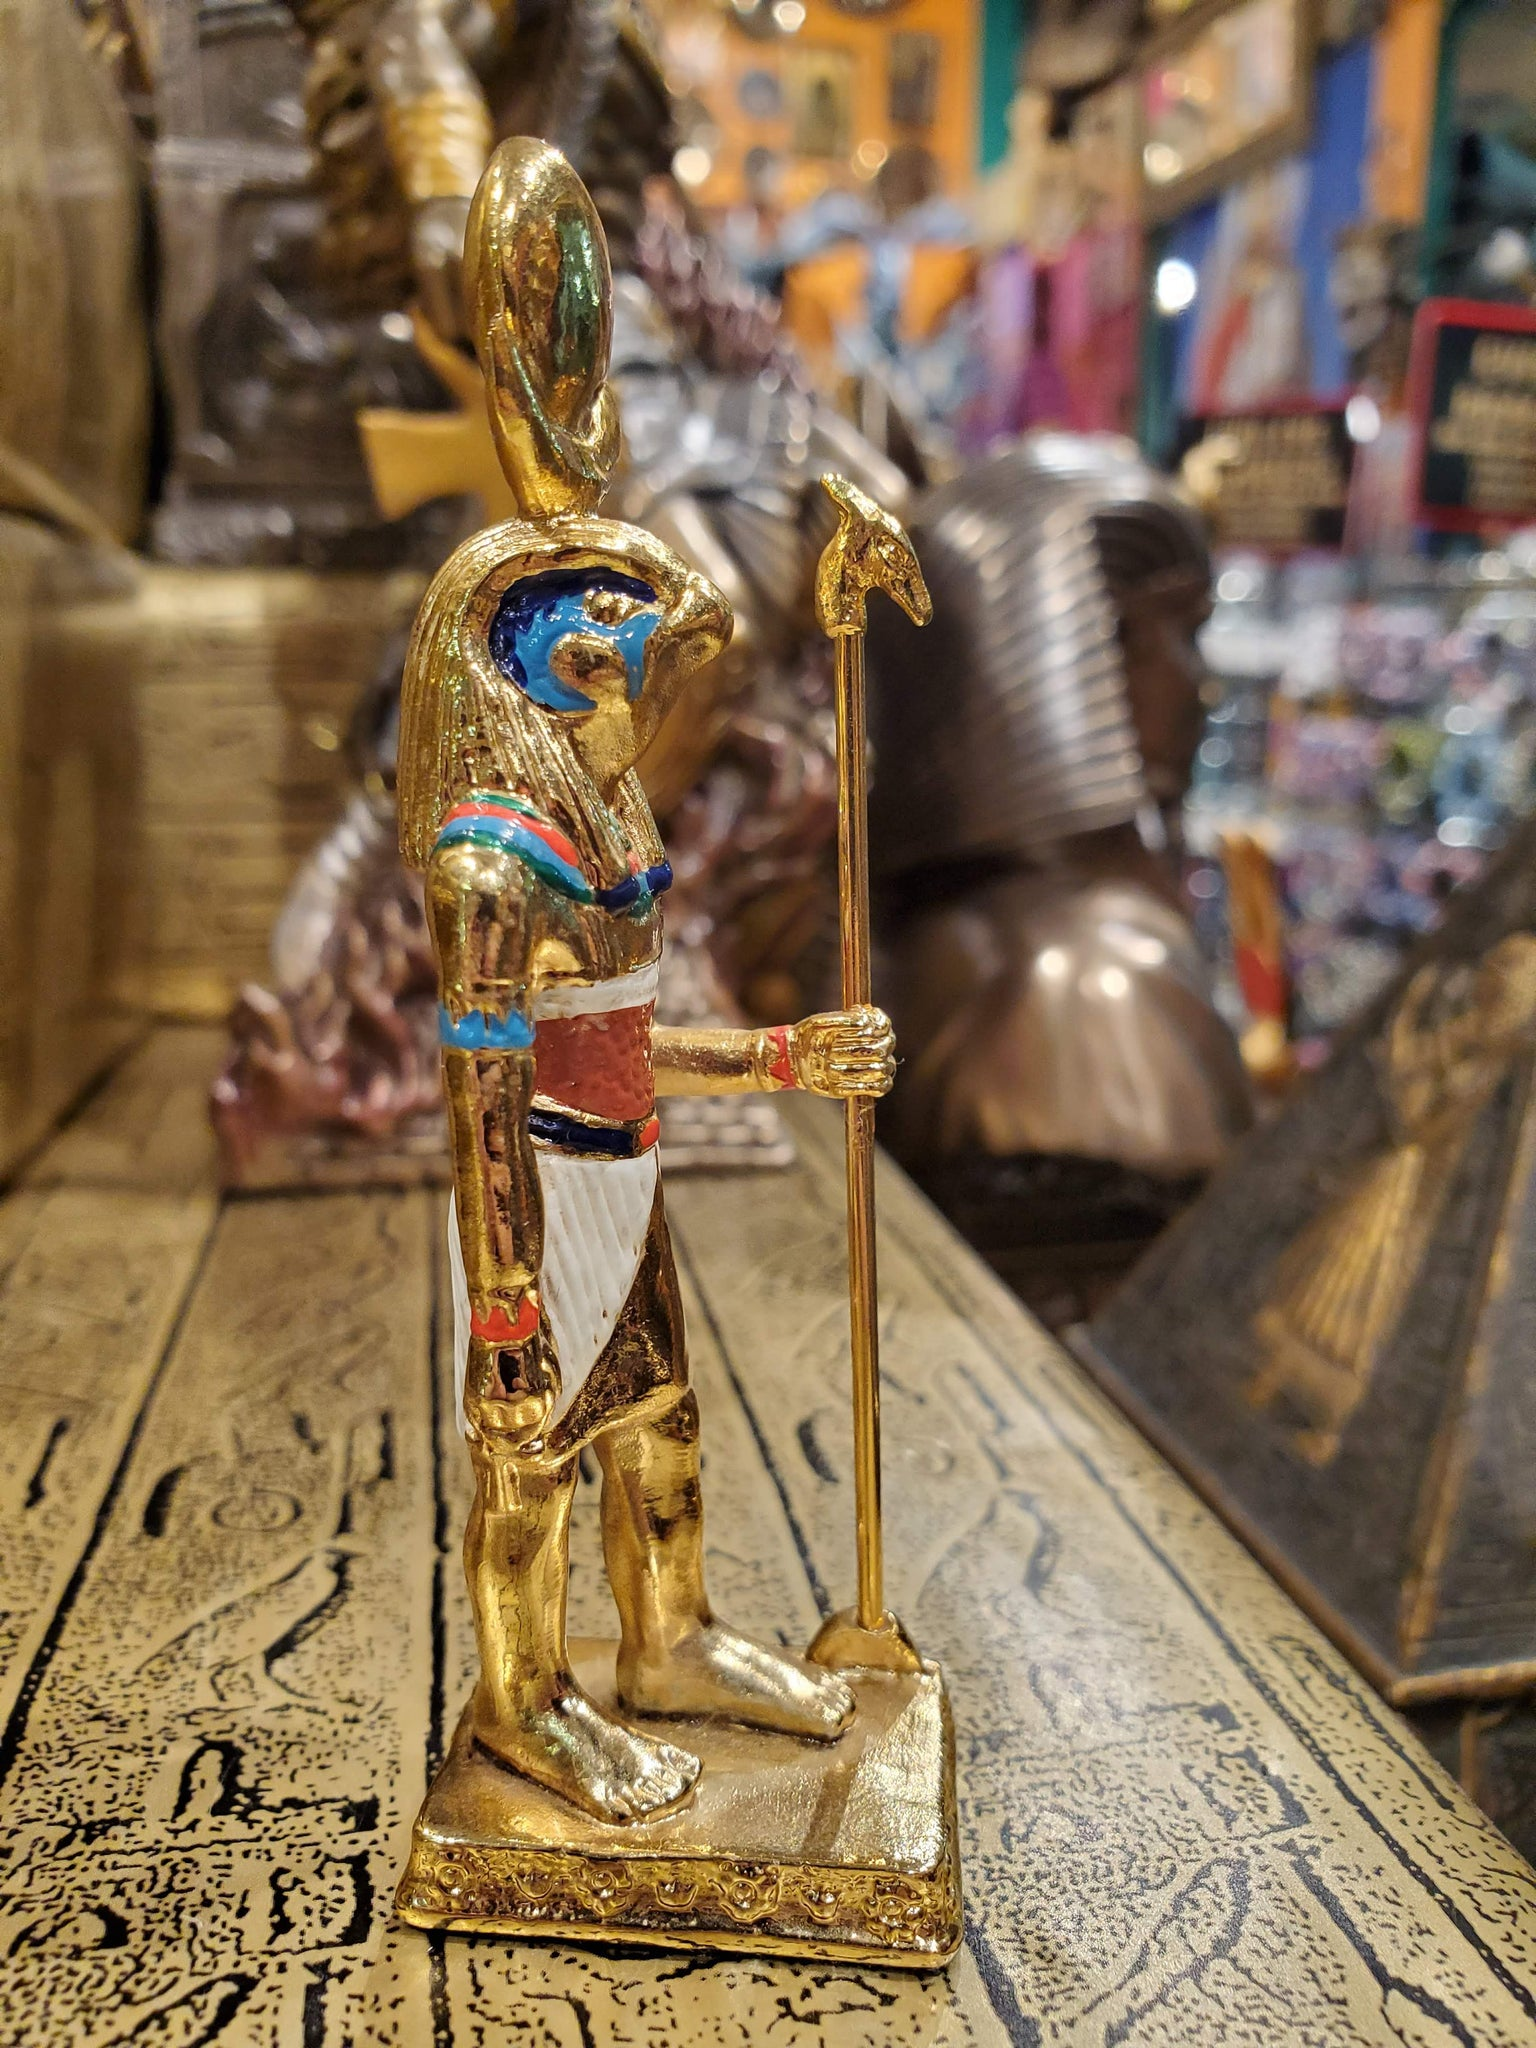 Small Gold Horus Figurine - Egyptian Sky God Horus - Beautiful Hand-Painted Figurine - Altar Statue - 3.5 inches / 9cm Tall!